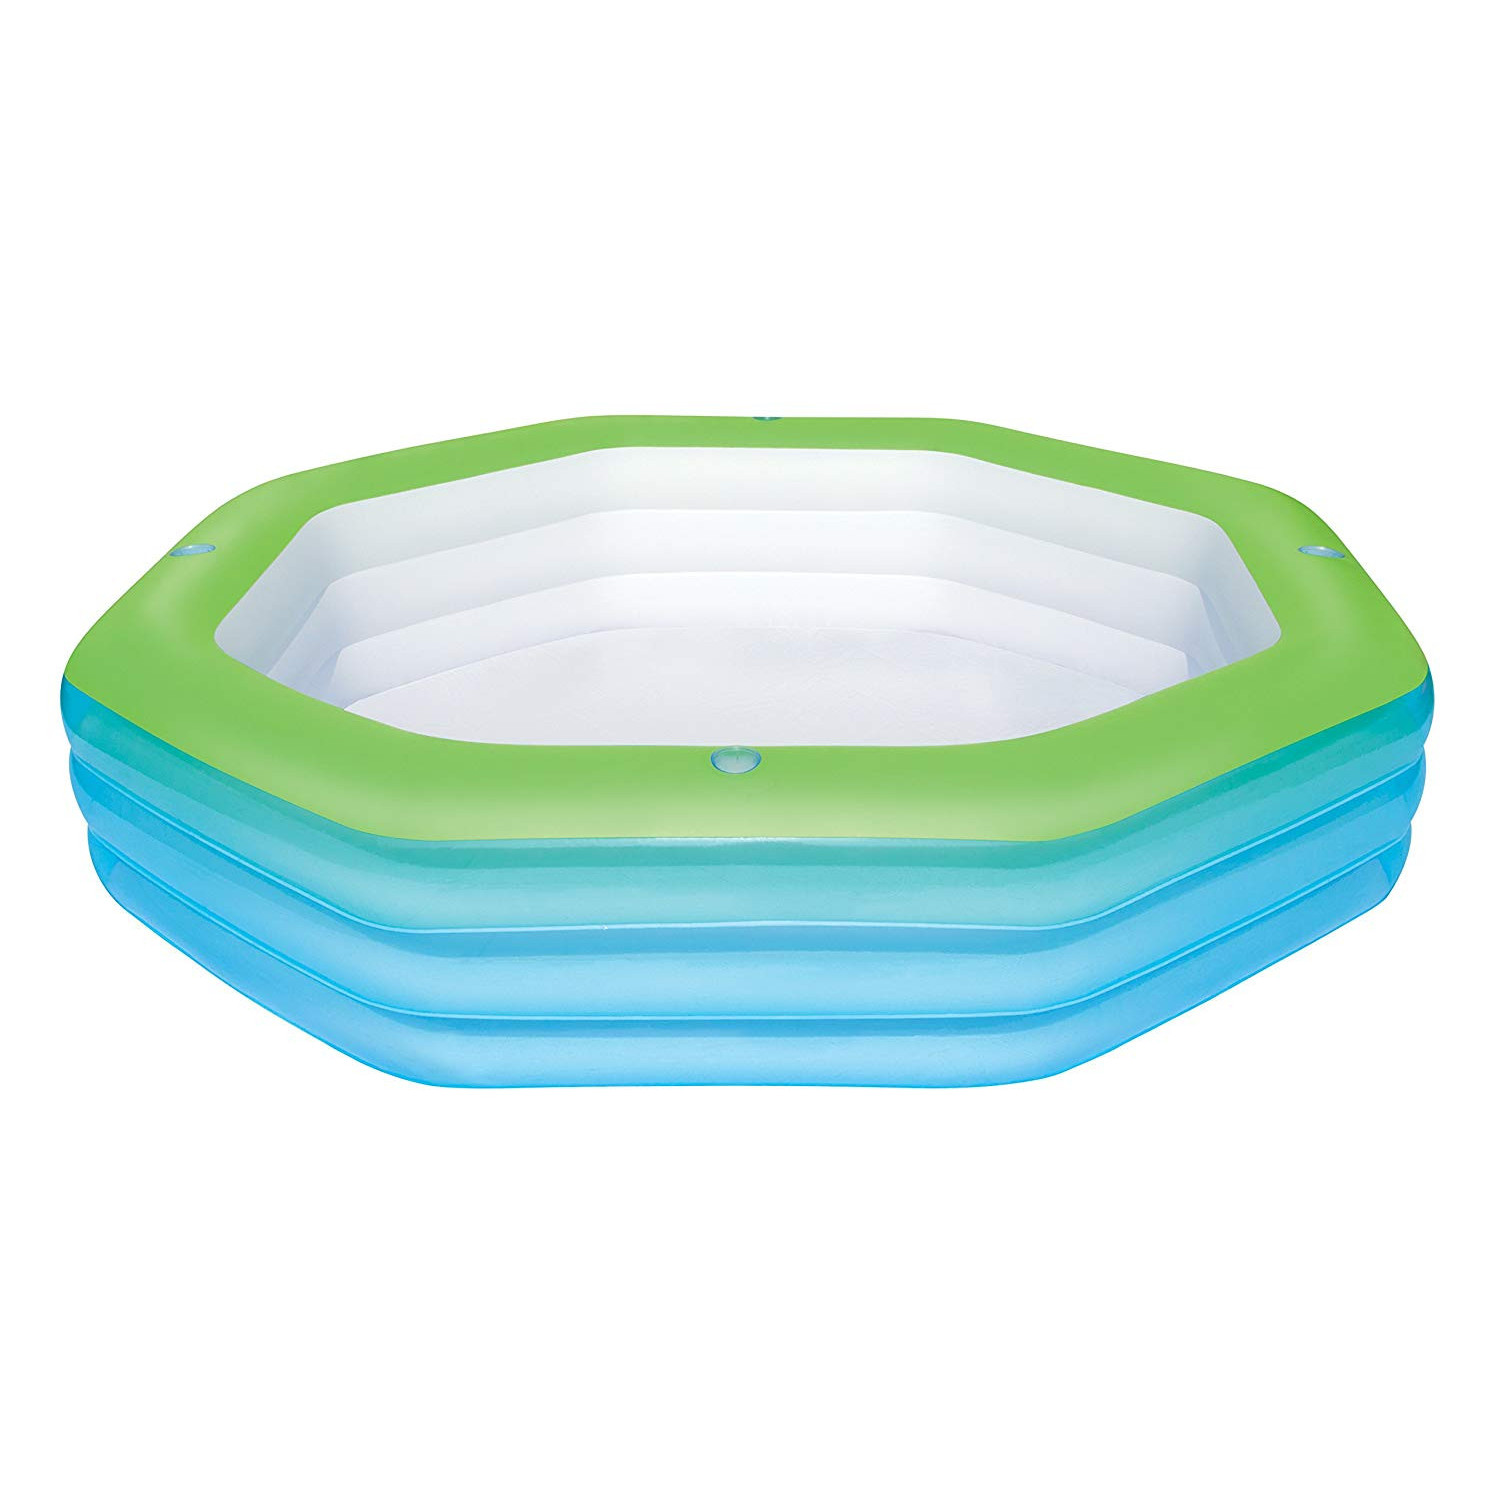 Bestway Inflatable Pool Deluxe Child Octagon Family 250 Cm X 250 Cm X 51 Cm-54119-